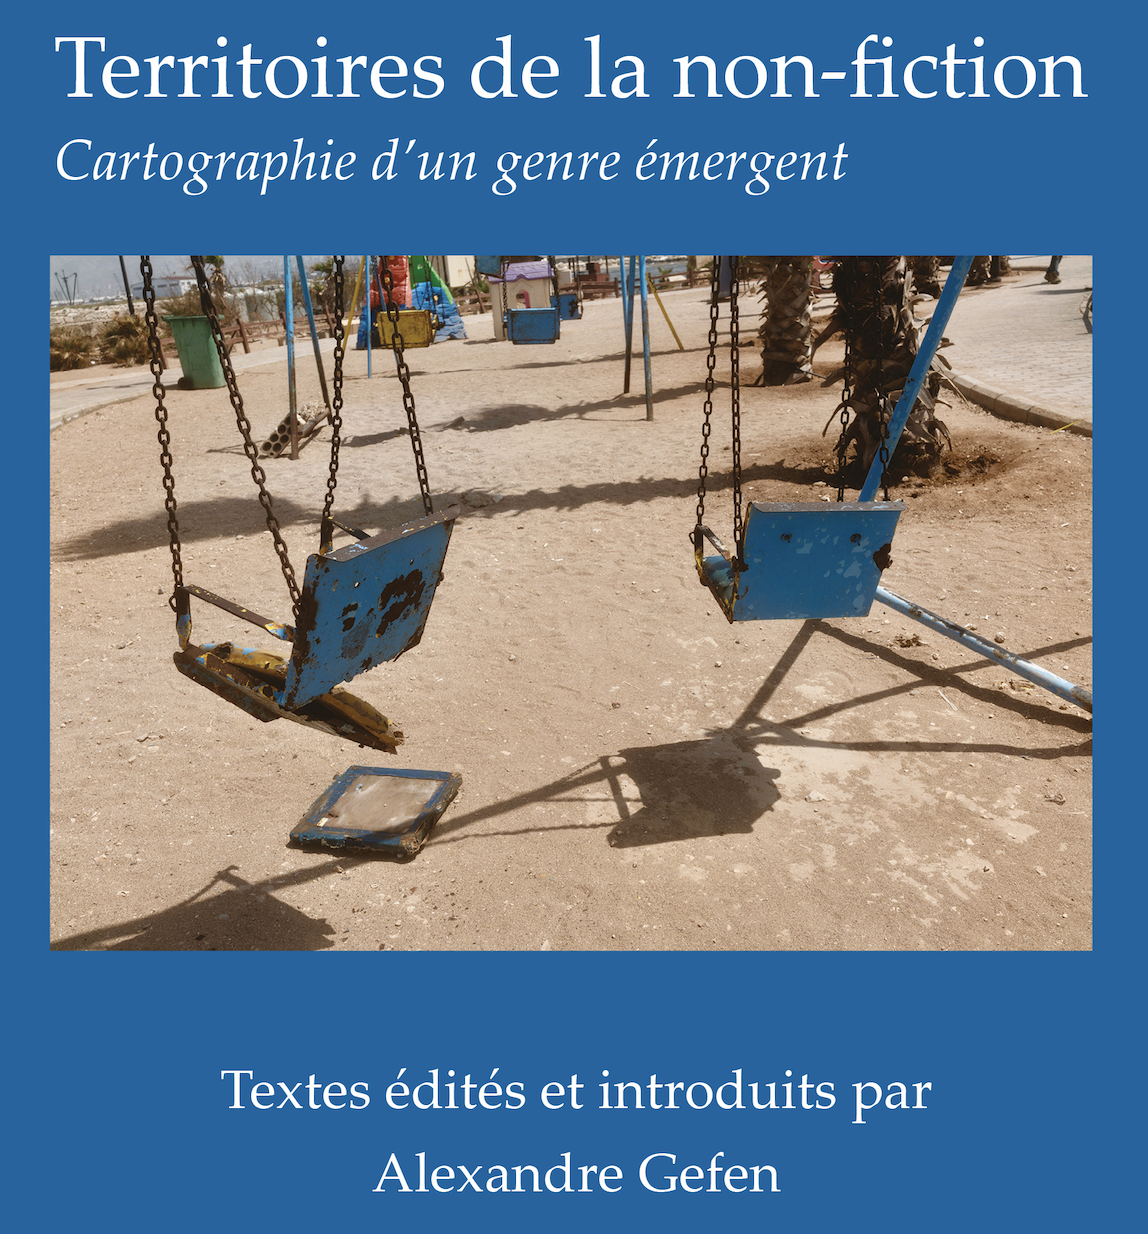 Territoires de la non-fiction